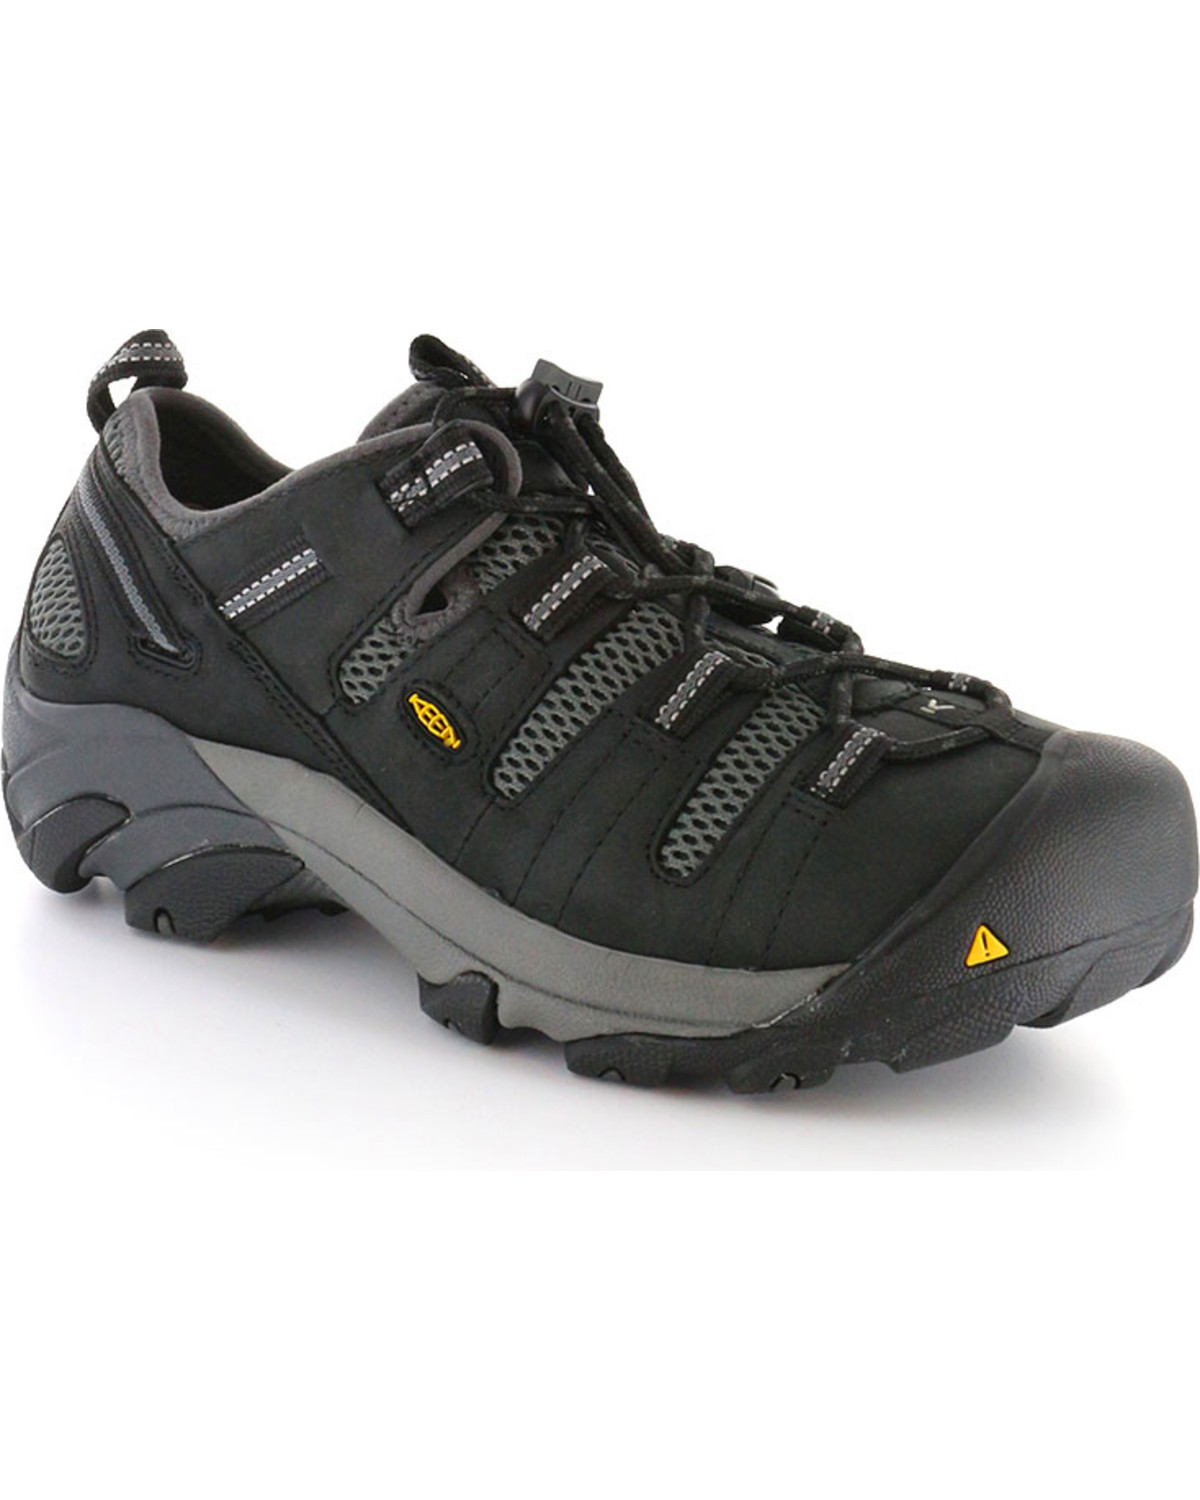 71180372284cff Keen Men s Black Utility Atlanta Cool Work Shoes - Steel Toe